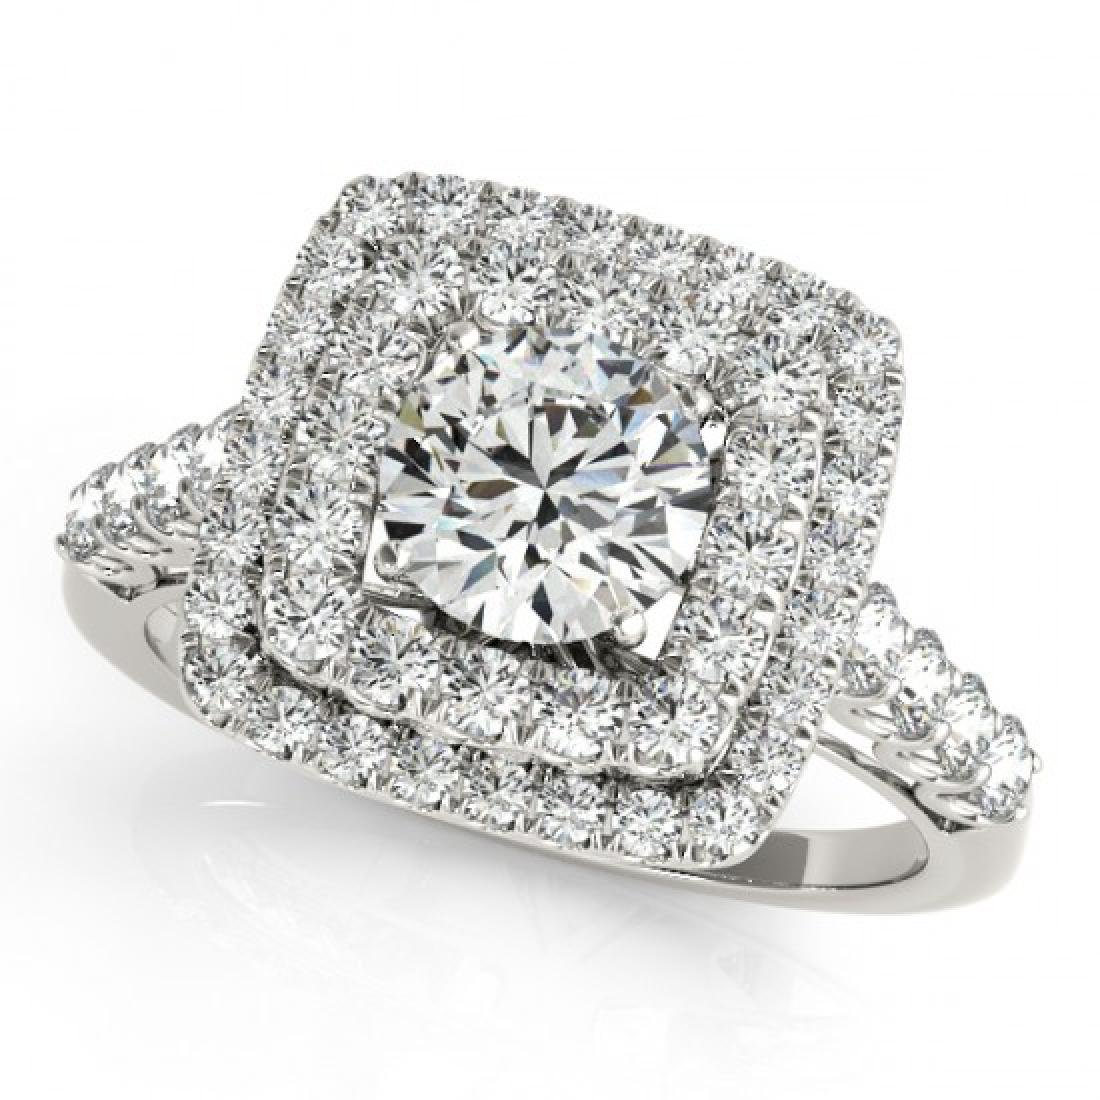 2.3 CTW Certified VS/SI Diamond Solitaire Halo Ring 14K - 2